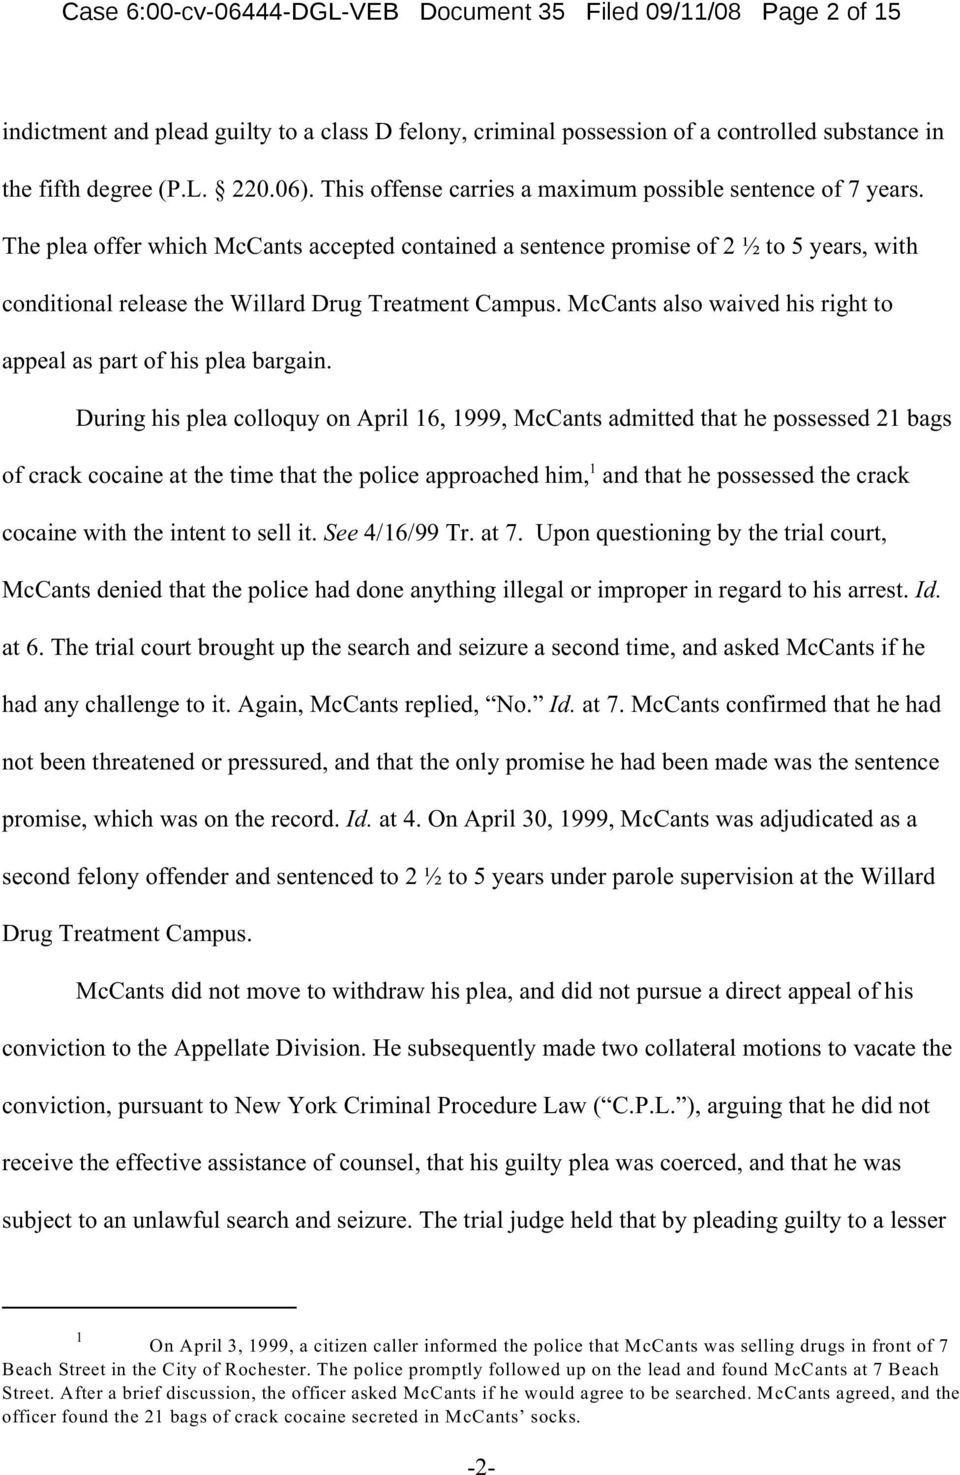 The plea offer which McCants accepted contained a sentence promise of 2 ½ to 5 years, with conditional release the Willard Drug Treatment Campus.